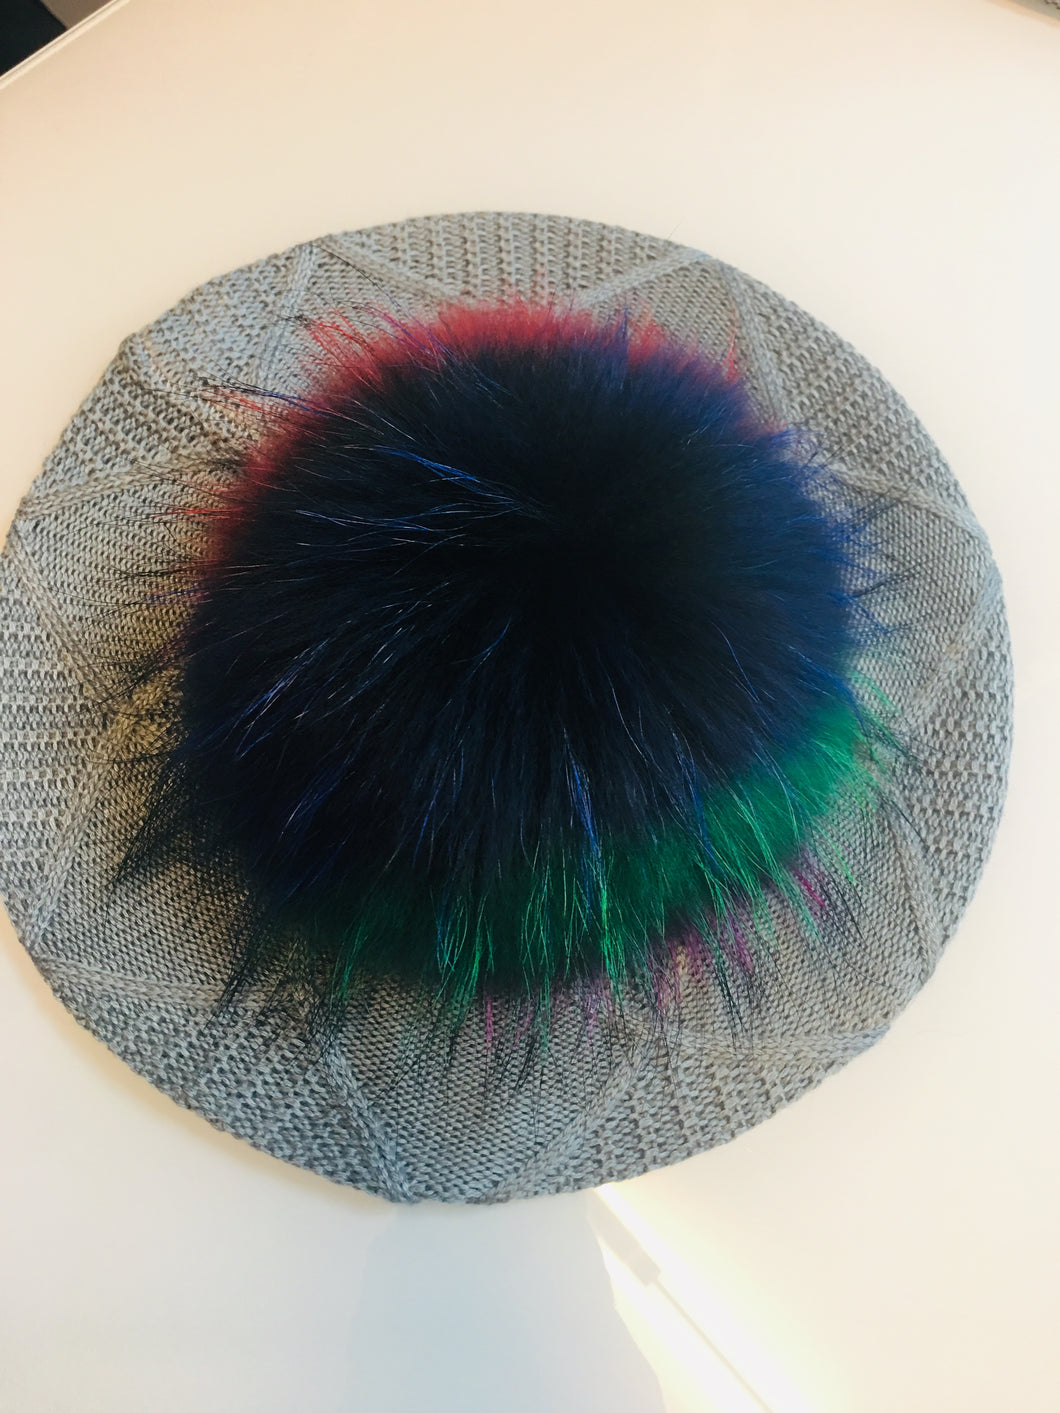 Grey/Silver  Beret/ Hat with Multi Color Pom Pom